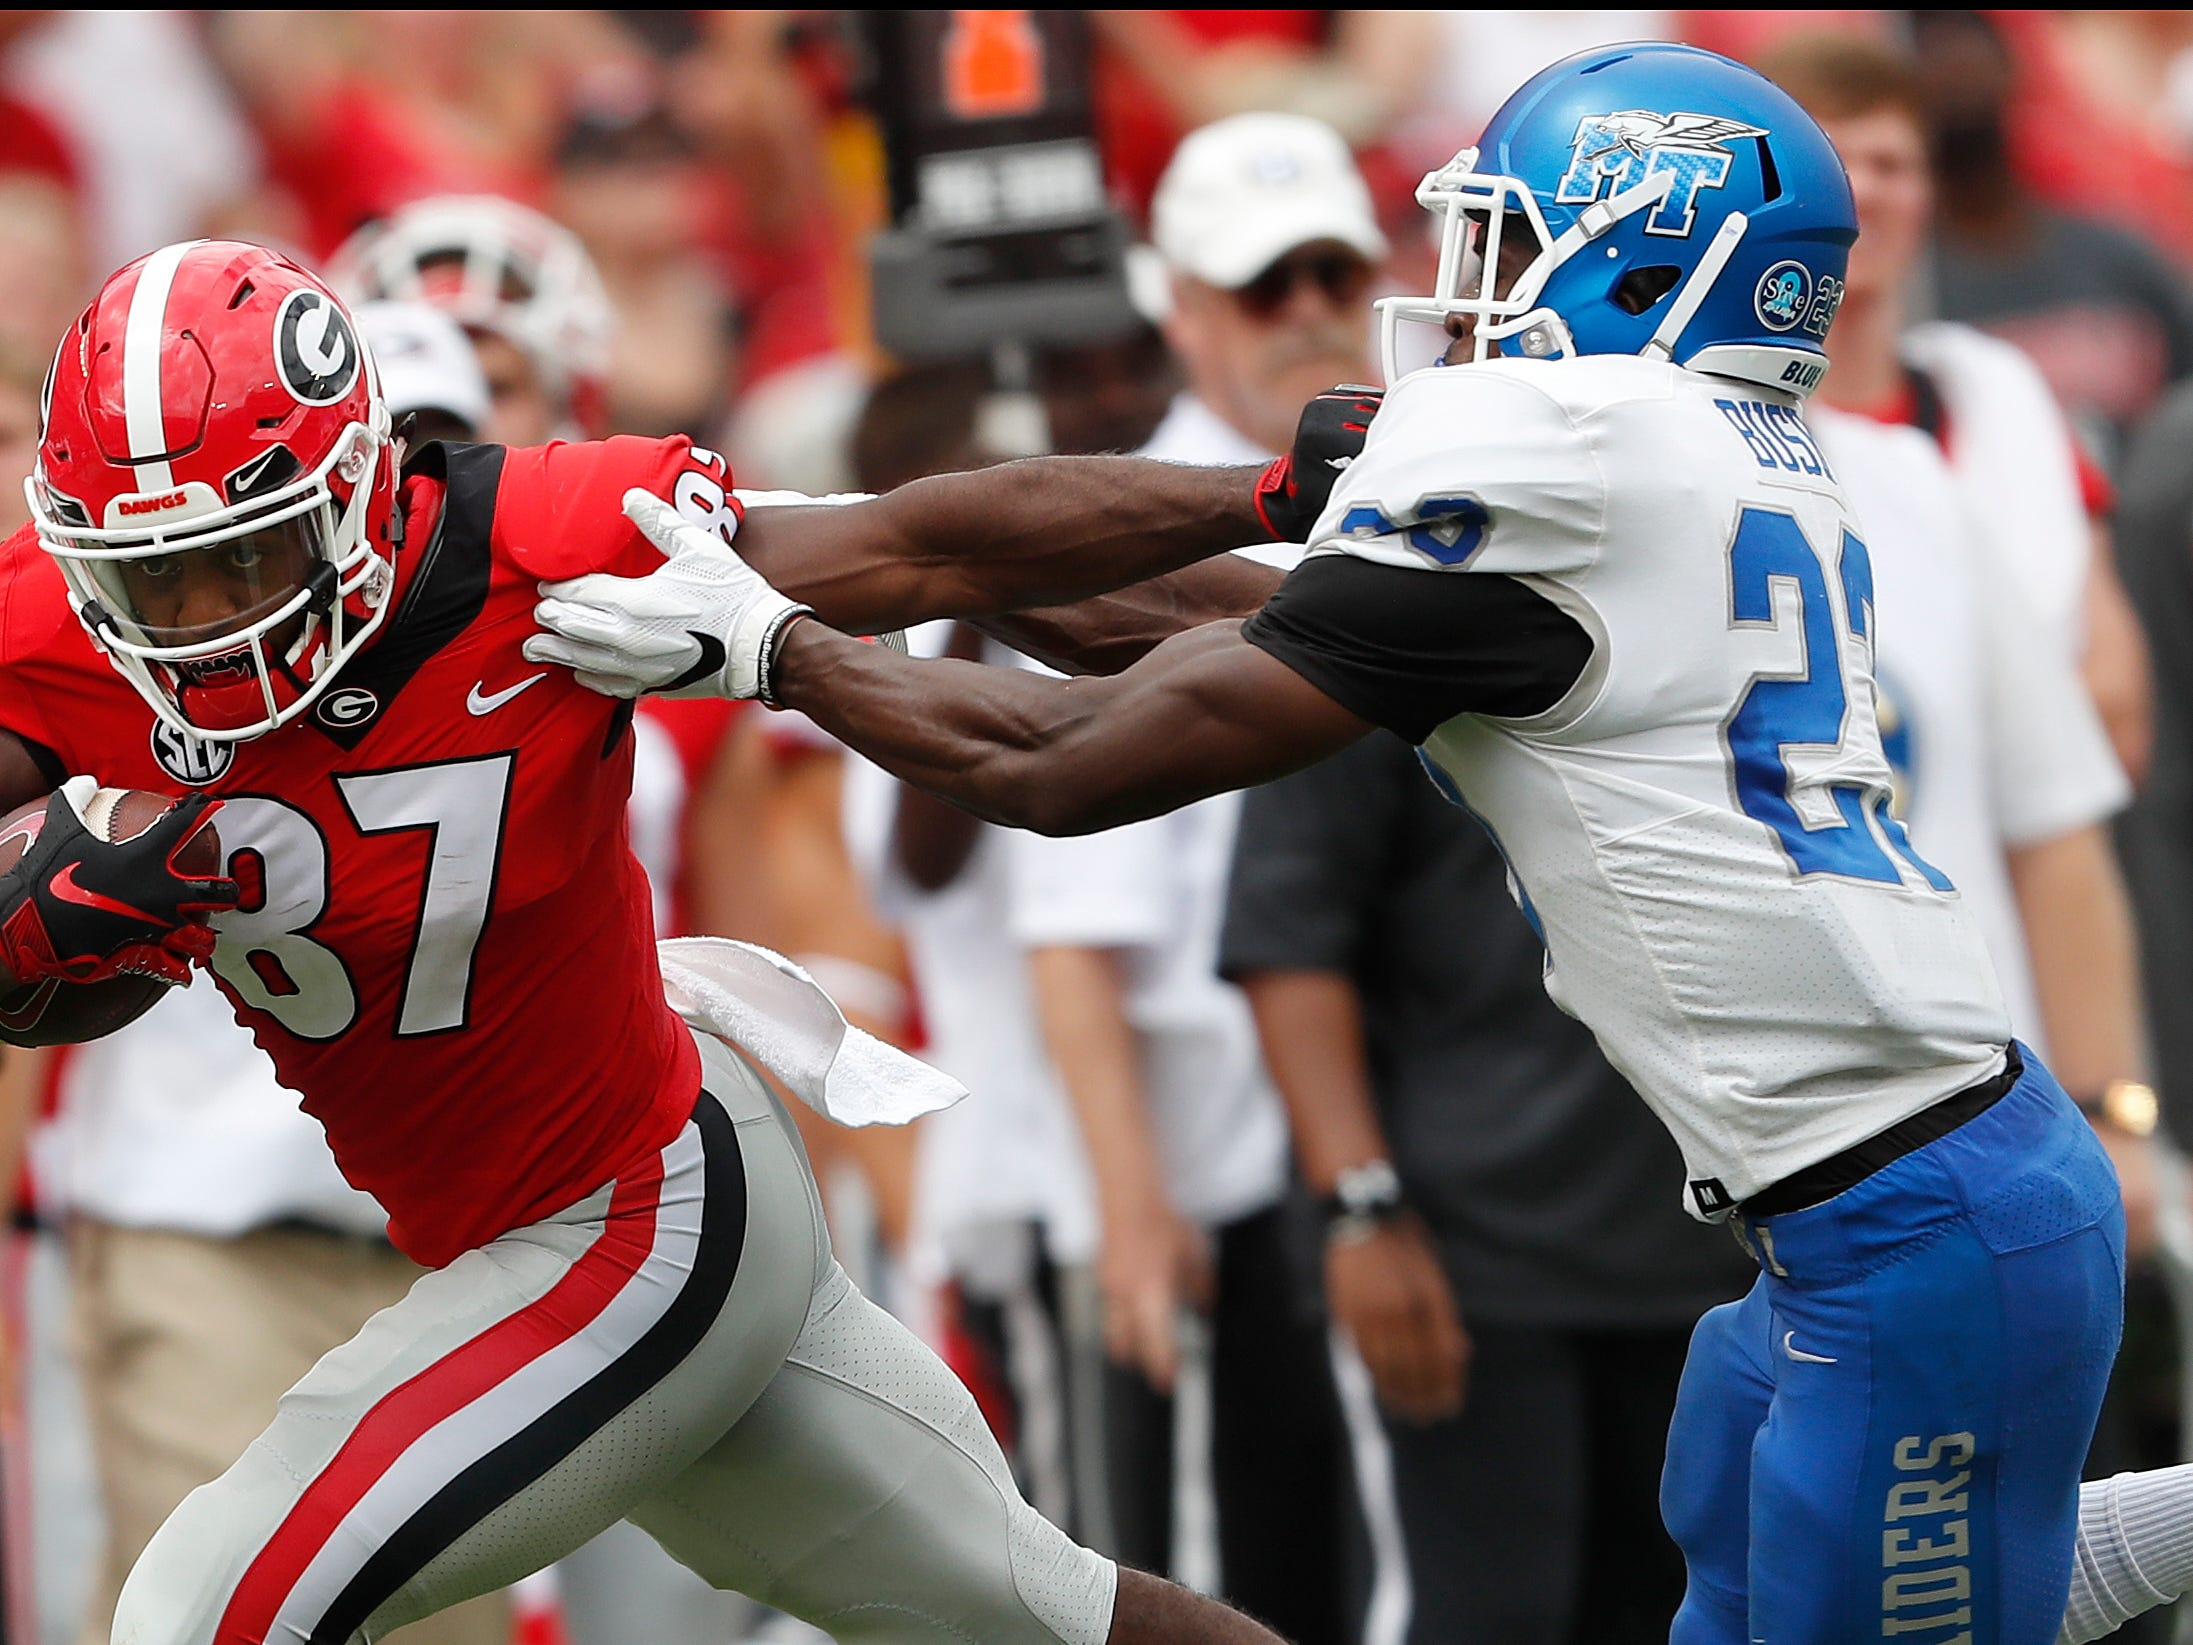 Georgia wide receiver Tyler Simmons (87) feeds off Middle Tennessee defensive back Wesley Bush (23) as he runs for a touchdown after a catch in the first half of an NCAA college football game Saturday, Sept. 15, 2018, in Athens, Ga. (AP Photo/John Bazemore)